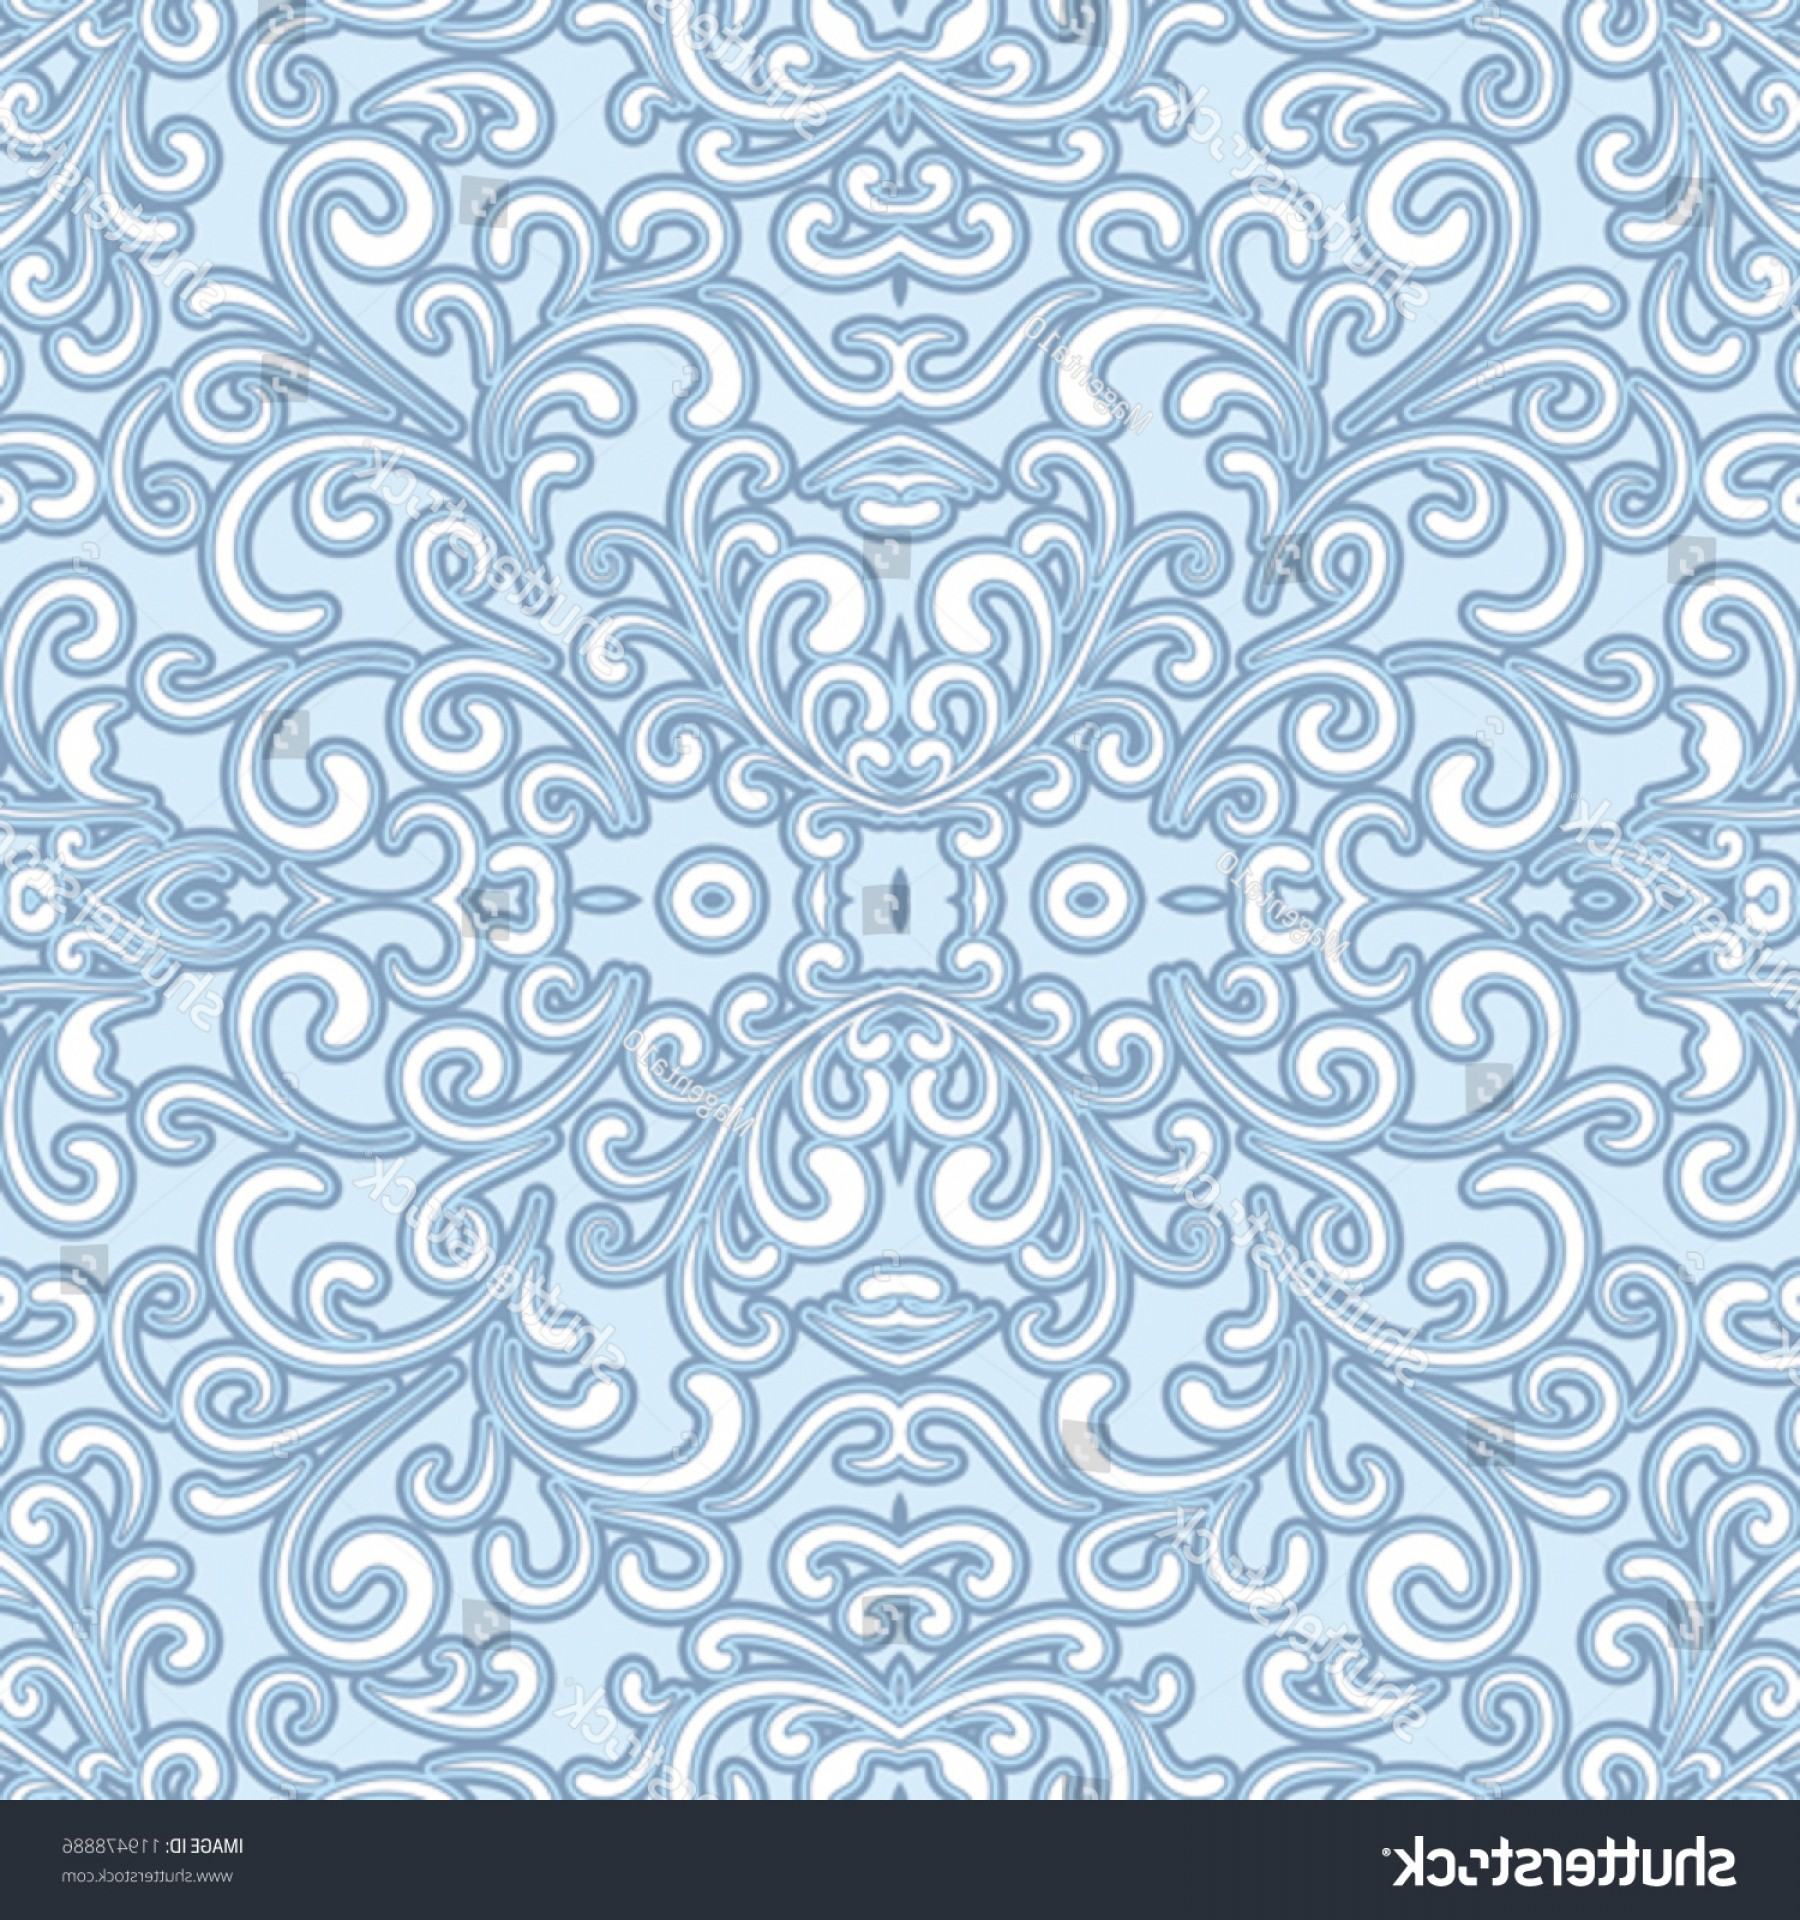 Vector Flourish Backgrounds: Flourish Seamless Pattern Abstract Decorative Vector